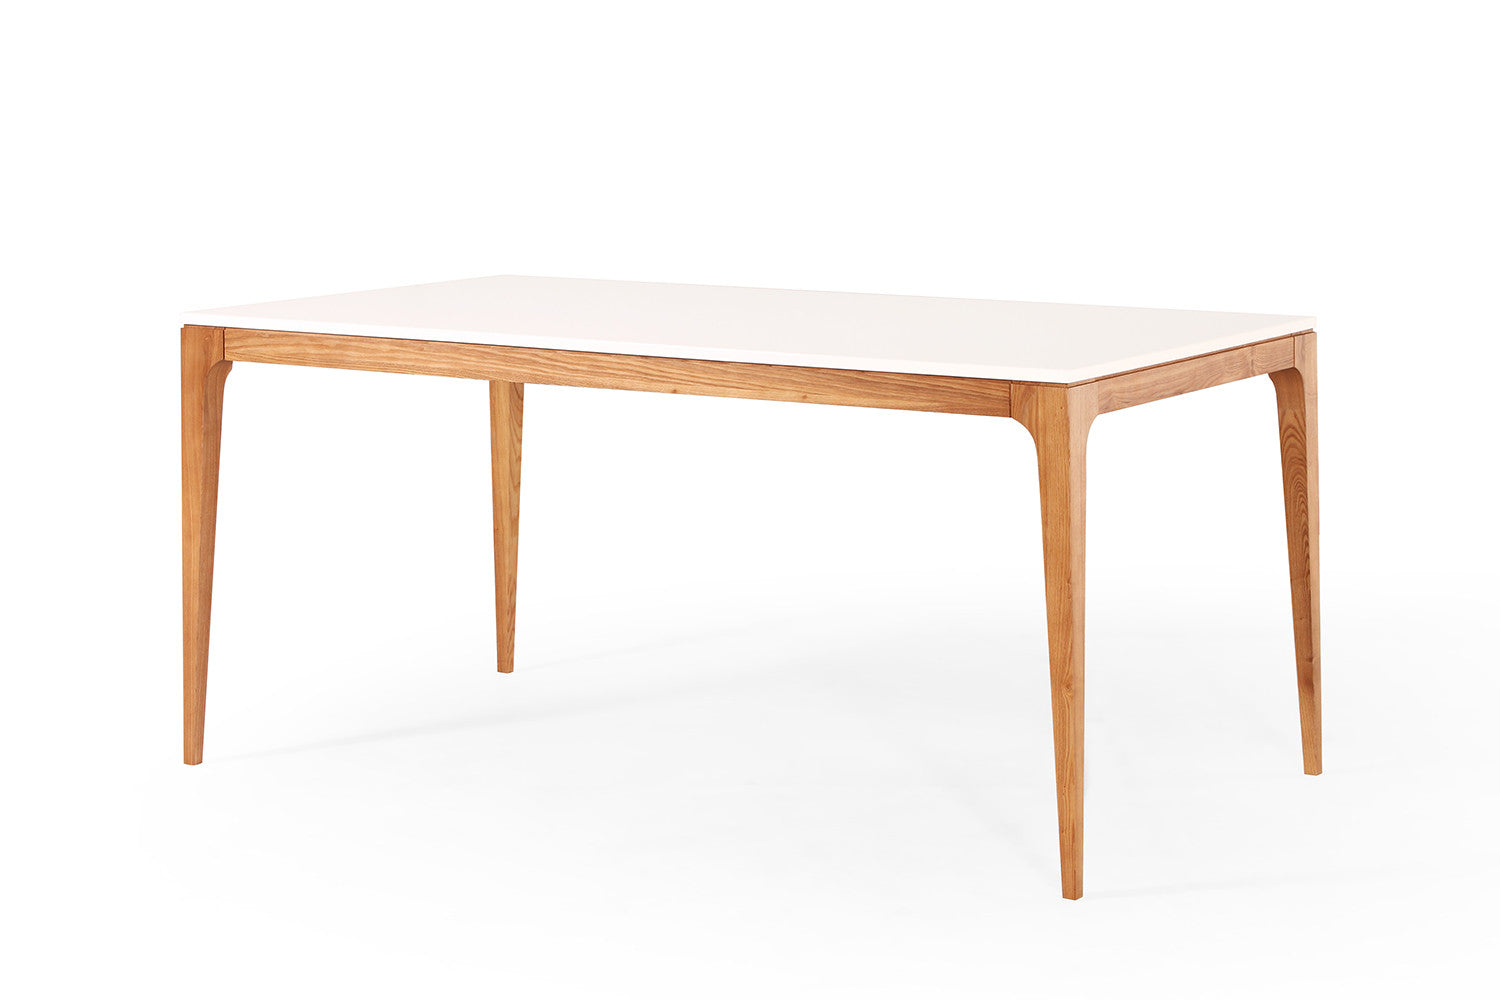 Table de repas design scandinave blanche et bois maggia for Table extensible design bois